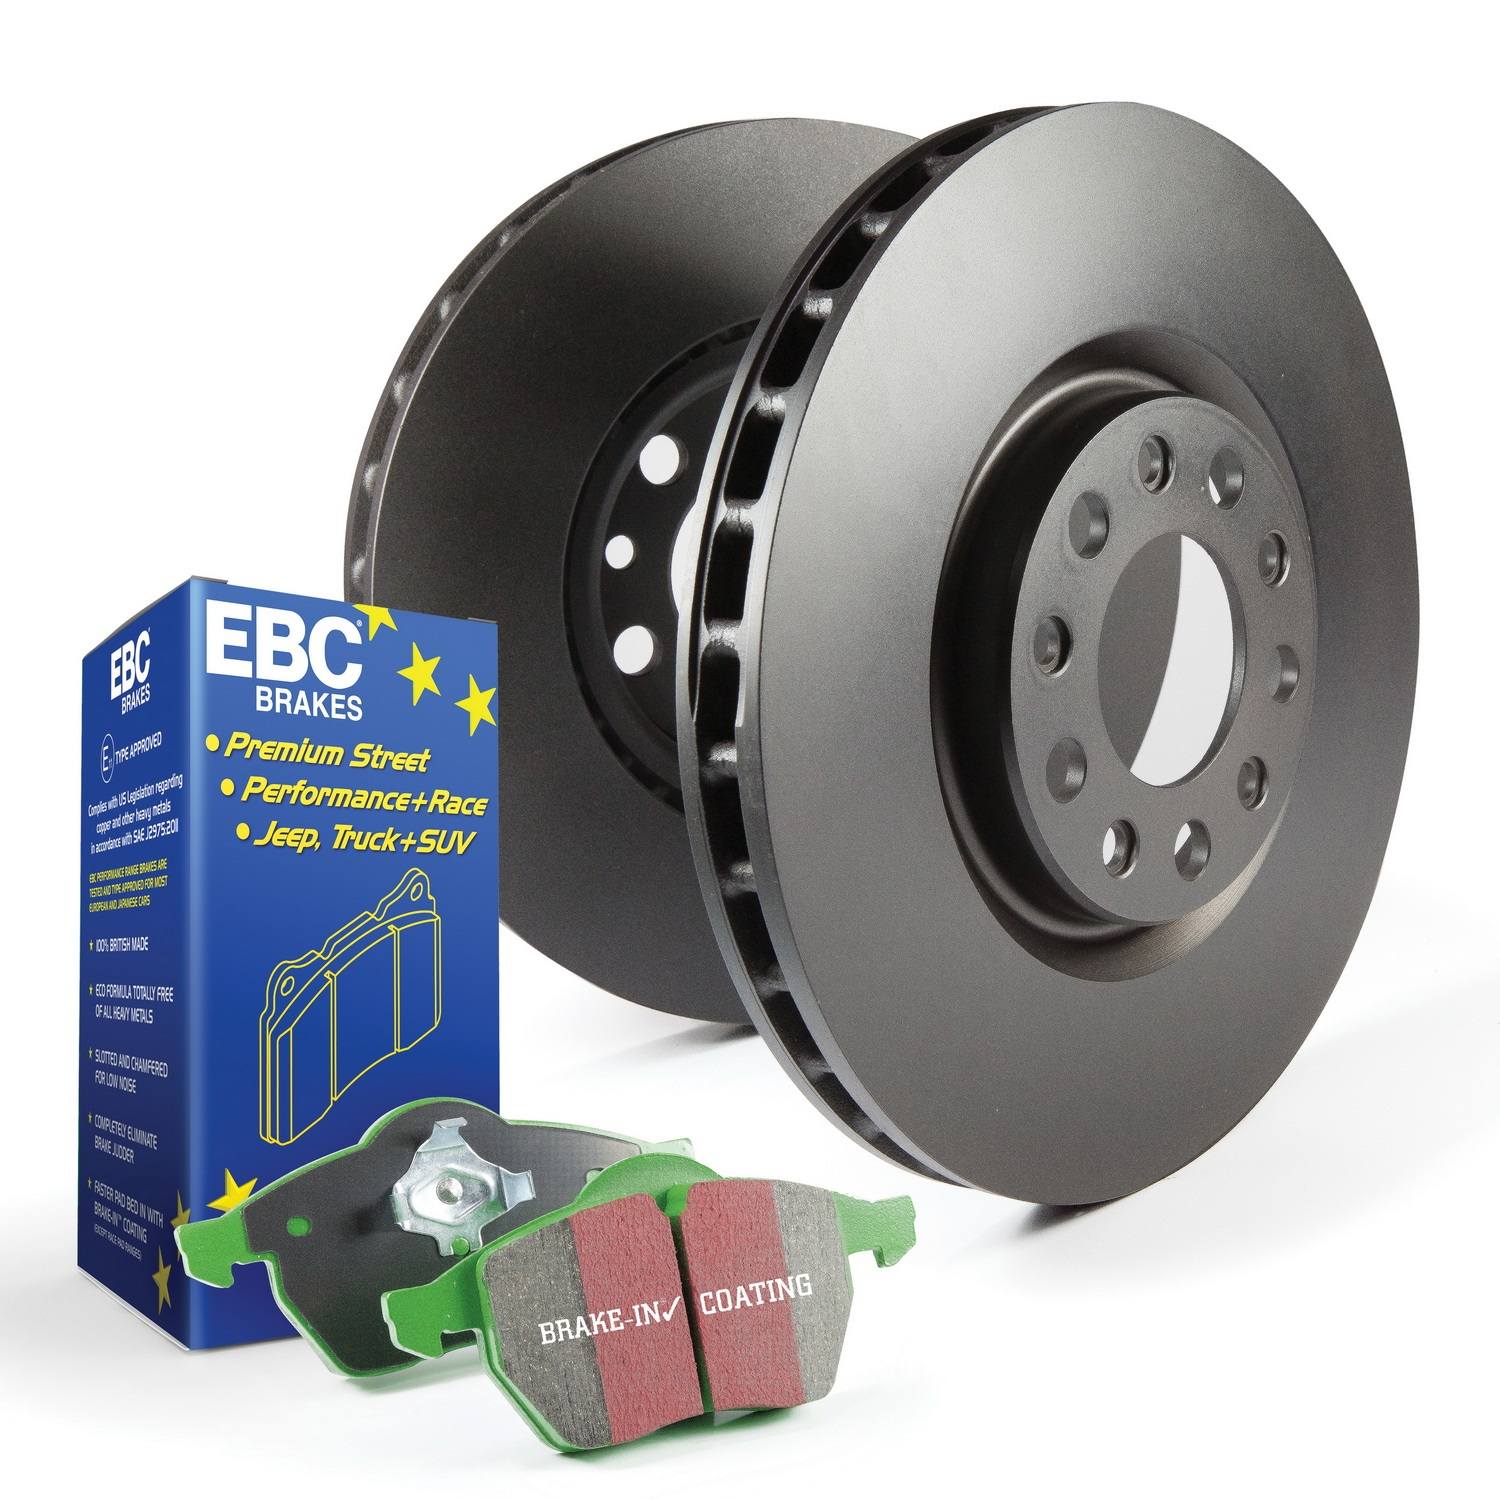 EBC Brakes S11KR1009 S11 Kits Greenstuff 2000 and RK Rotors Fits 630CSi 633CSi